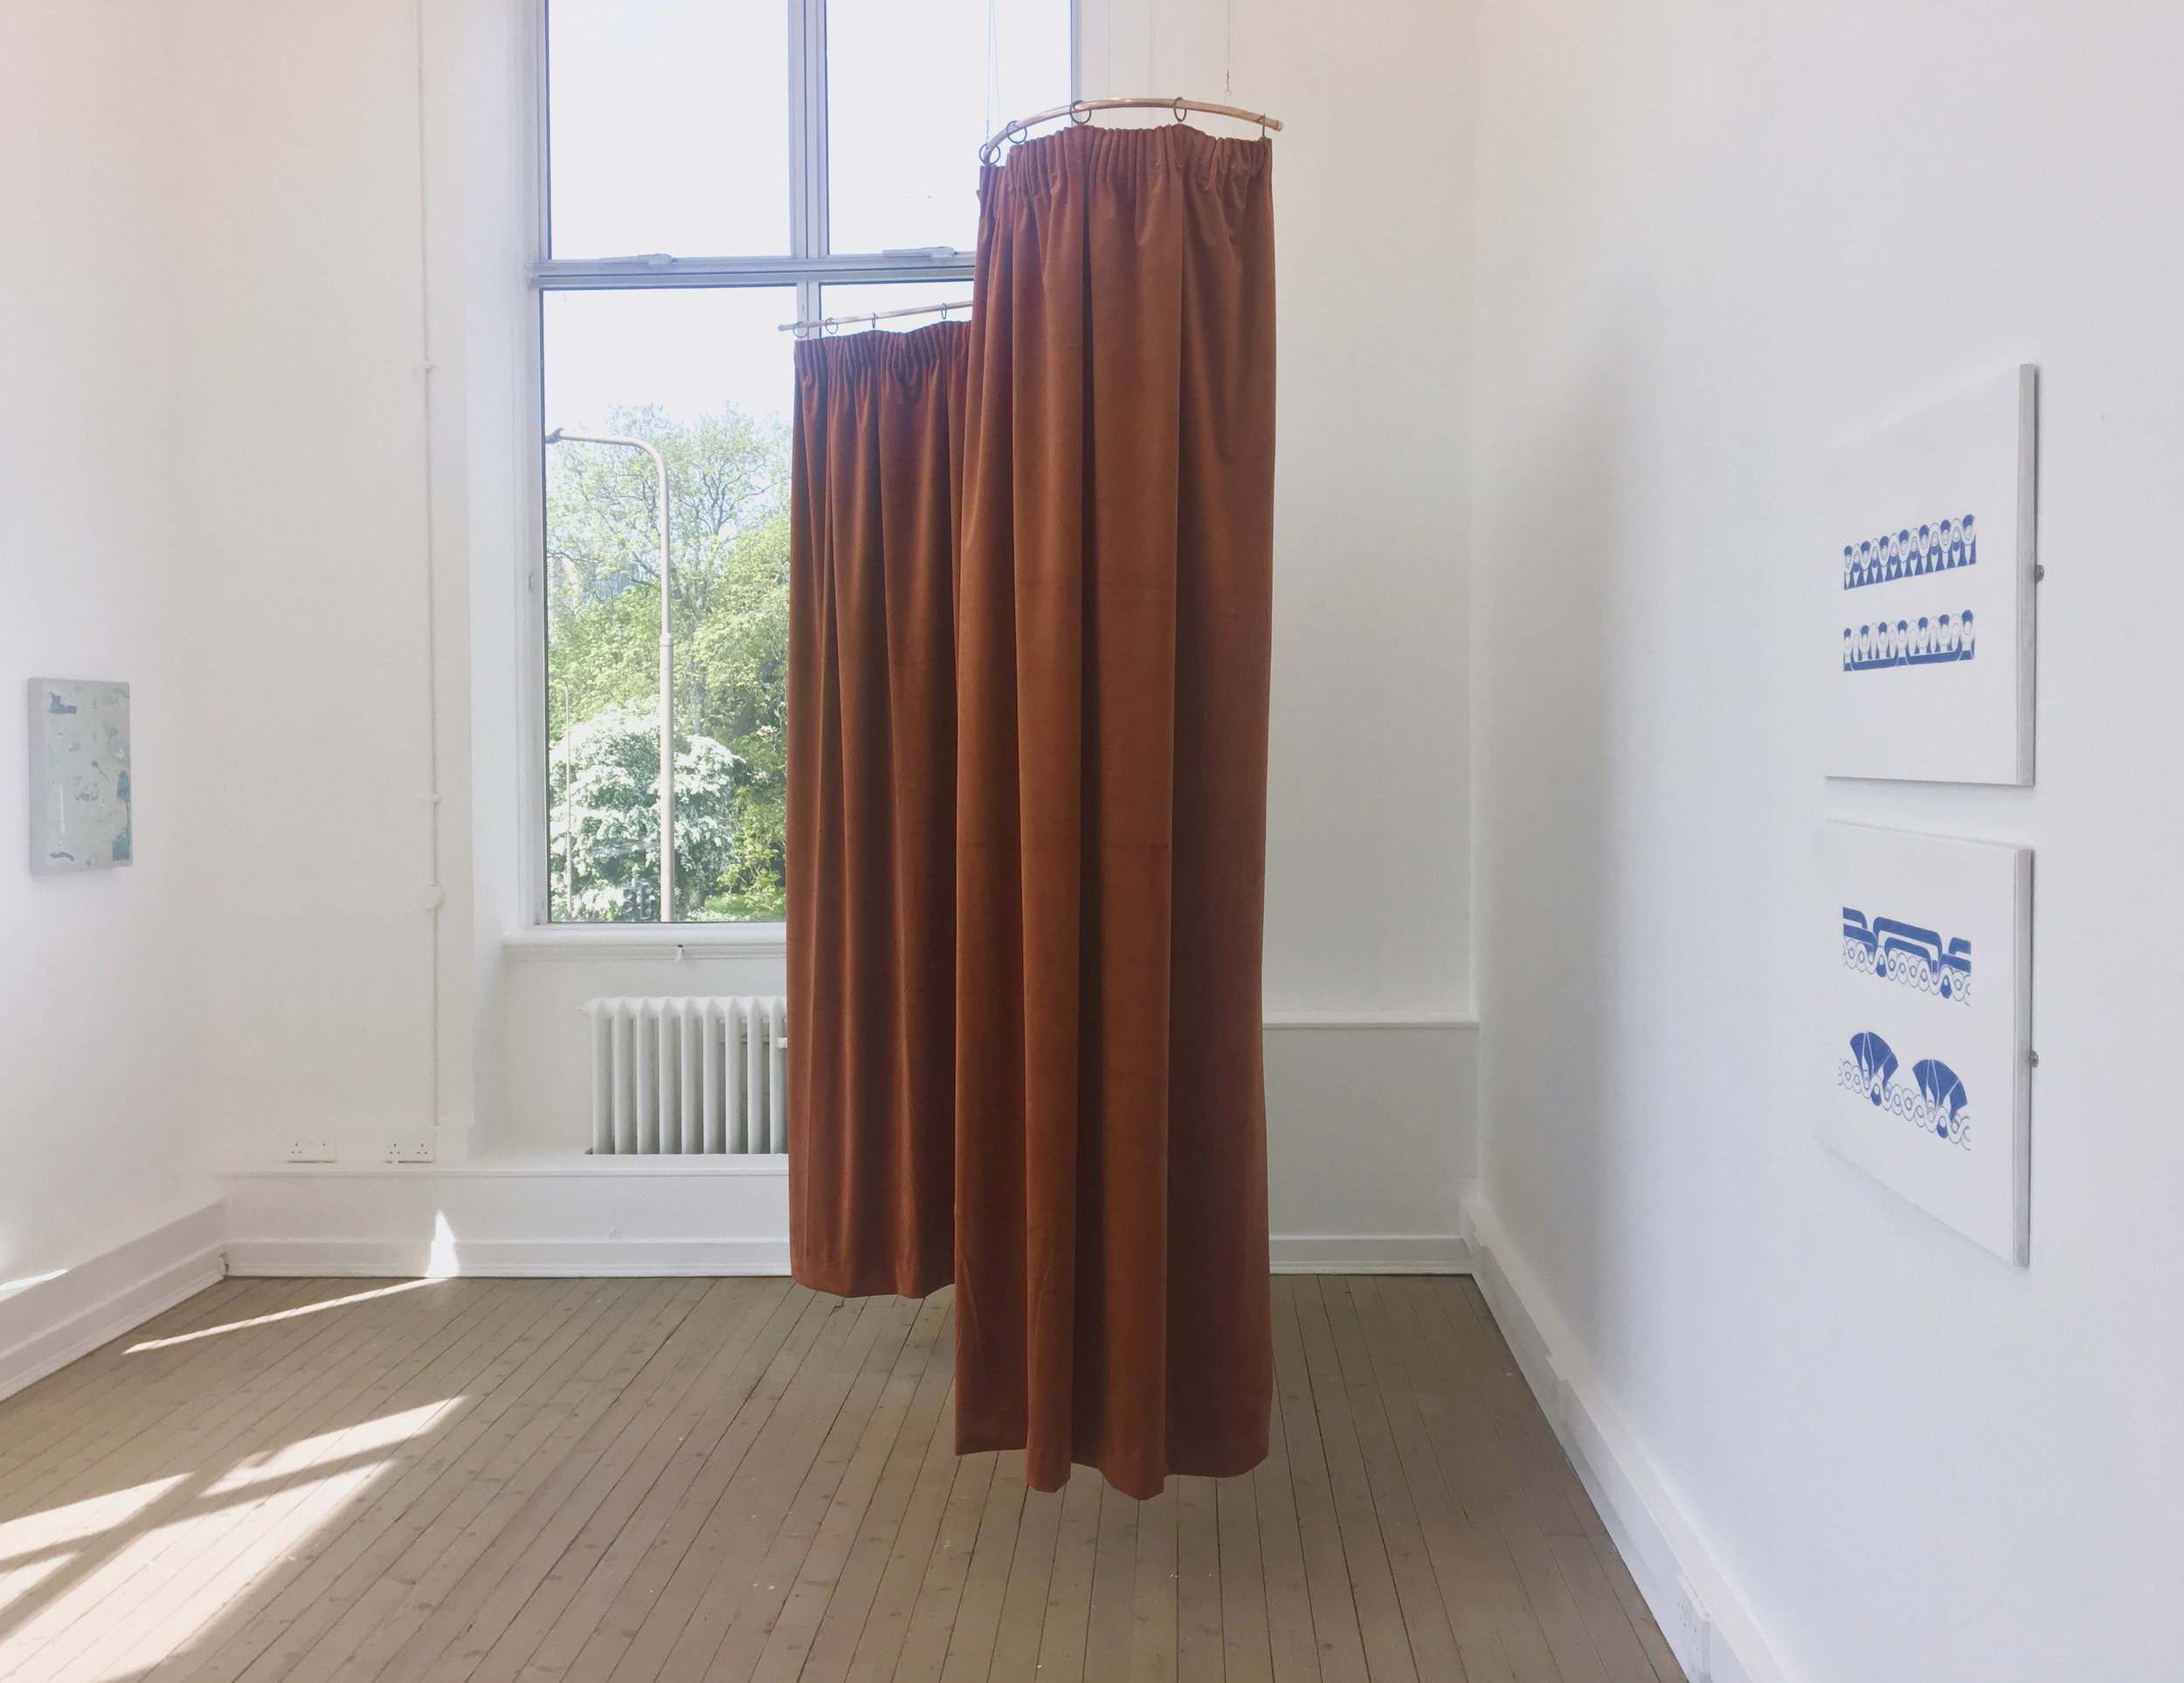 Visual Arts Scotland @ Summerhall  Furnishing Velvet and copper tubing with wall mounted drawings.  Summerhall, Edinburgh